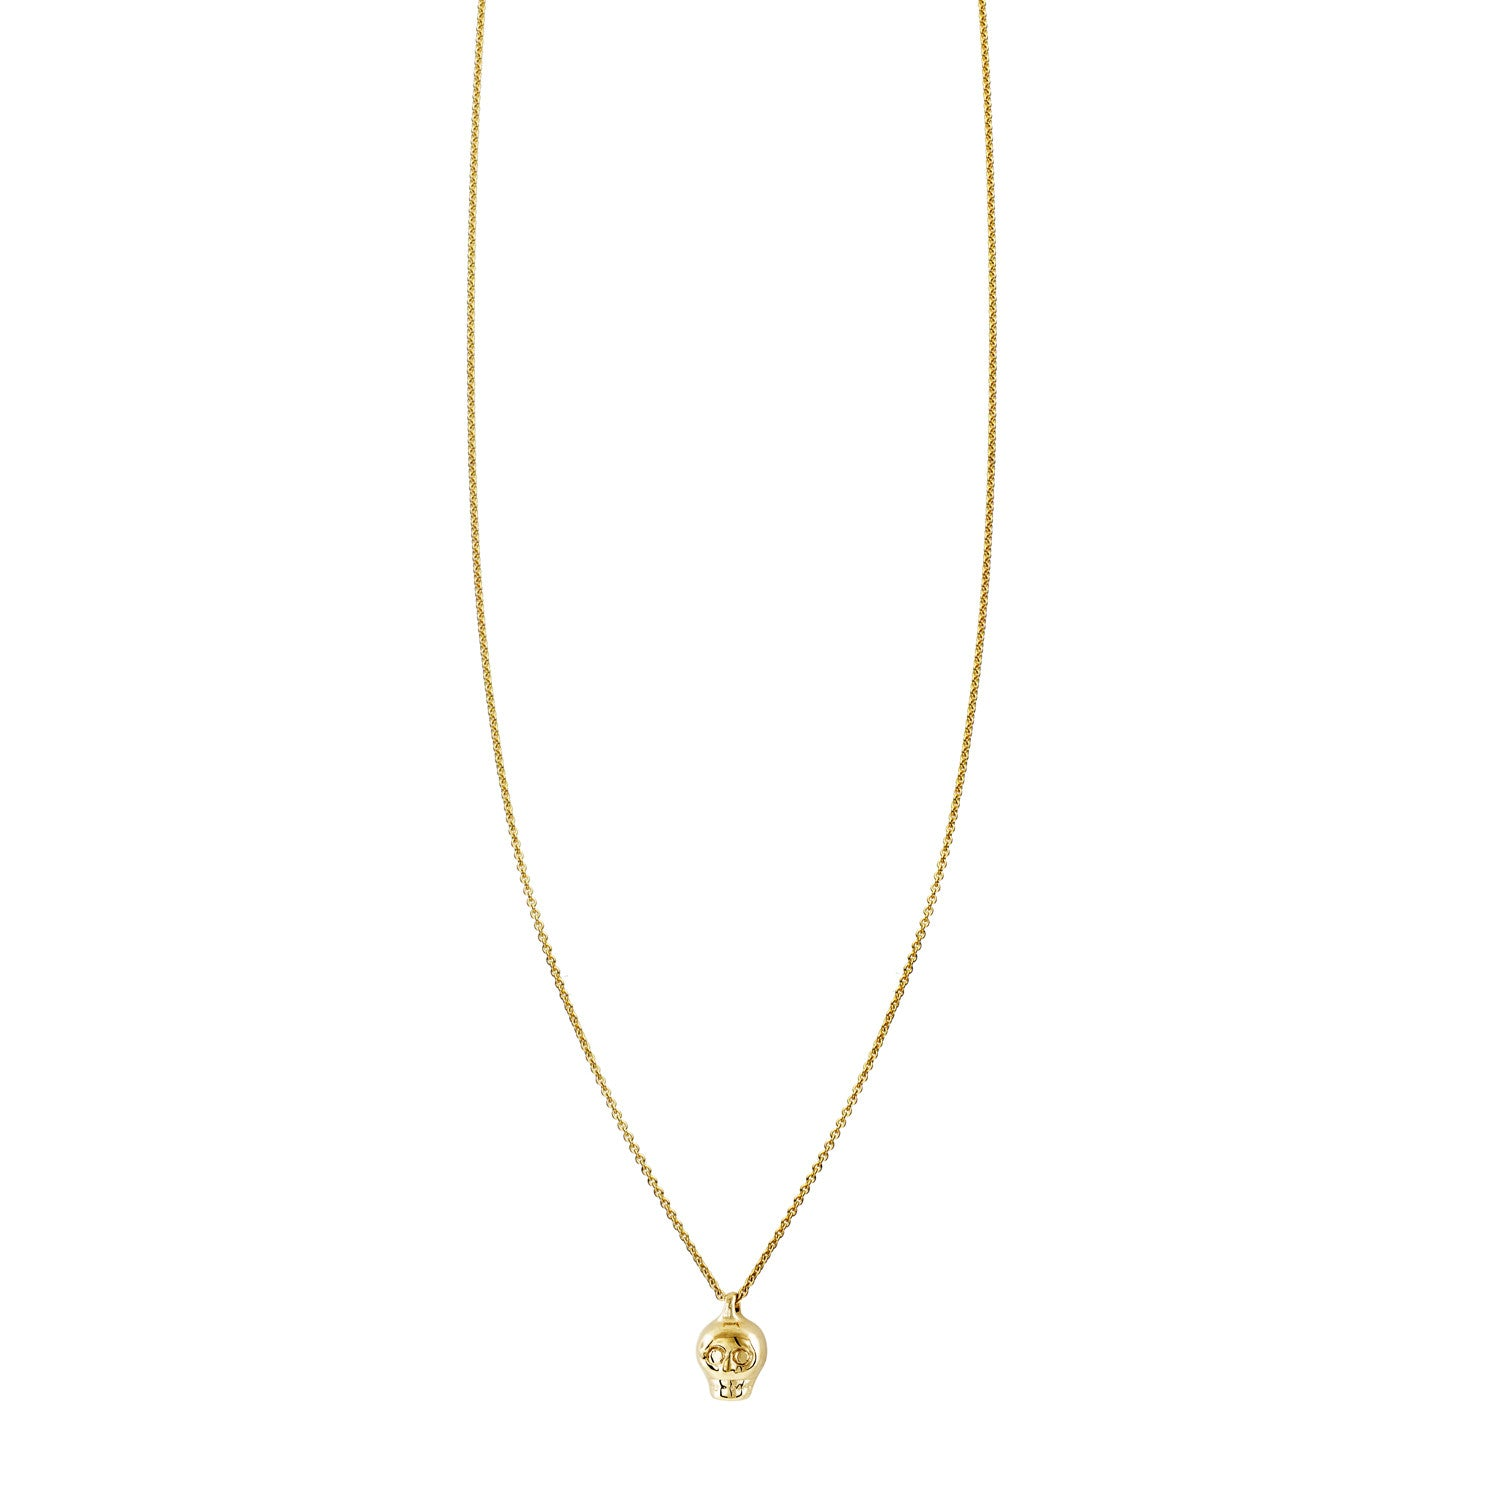 Baby Skull Charm On A Gold Necklace